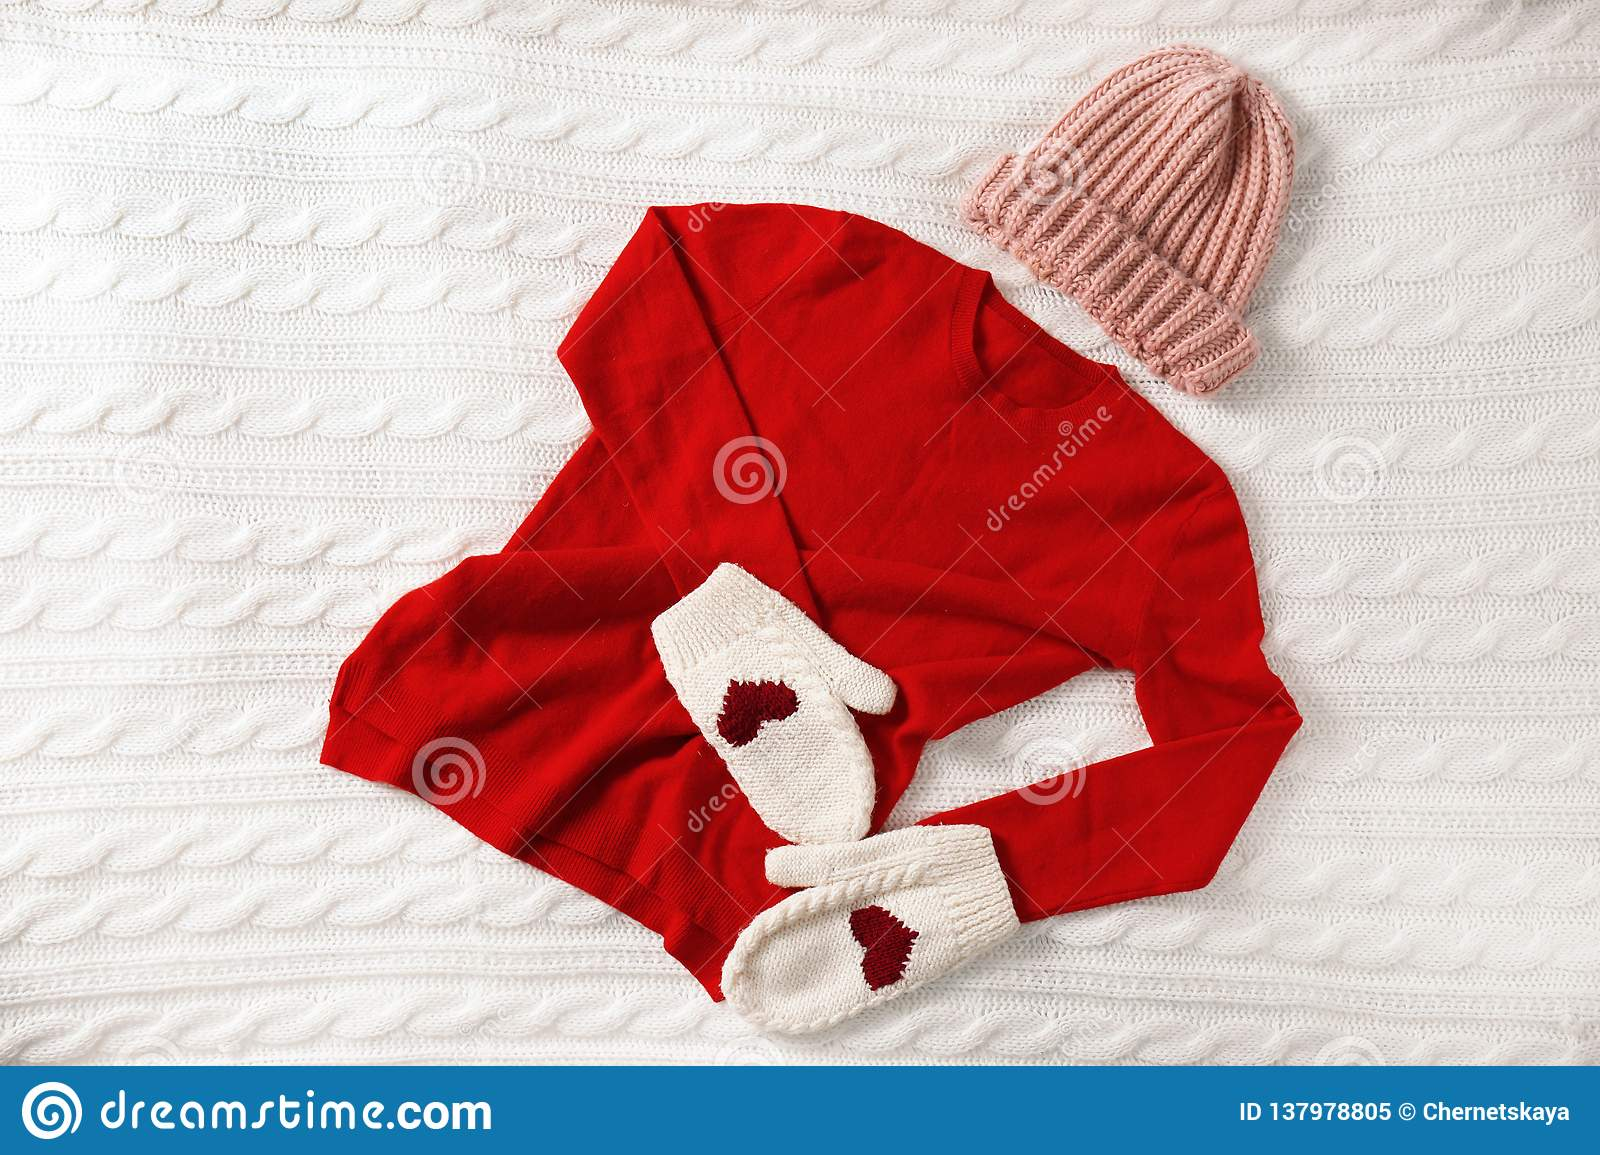 Red cashmere sweater, hat and mittens on knitted plaid